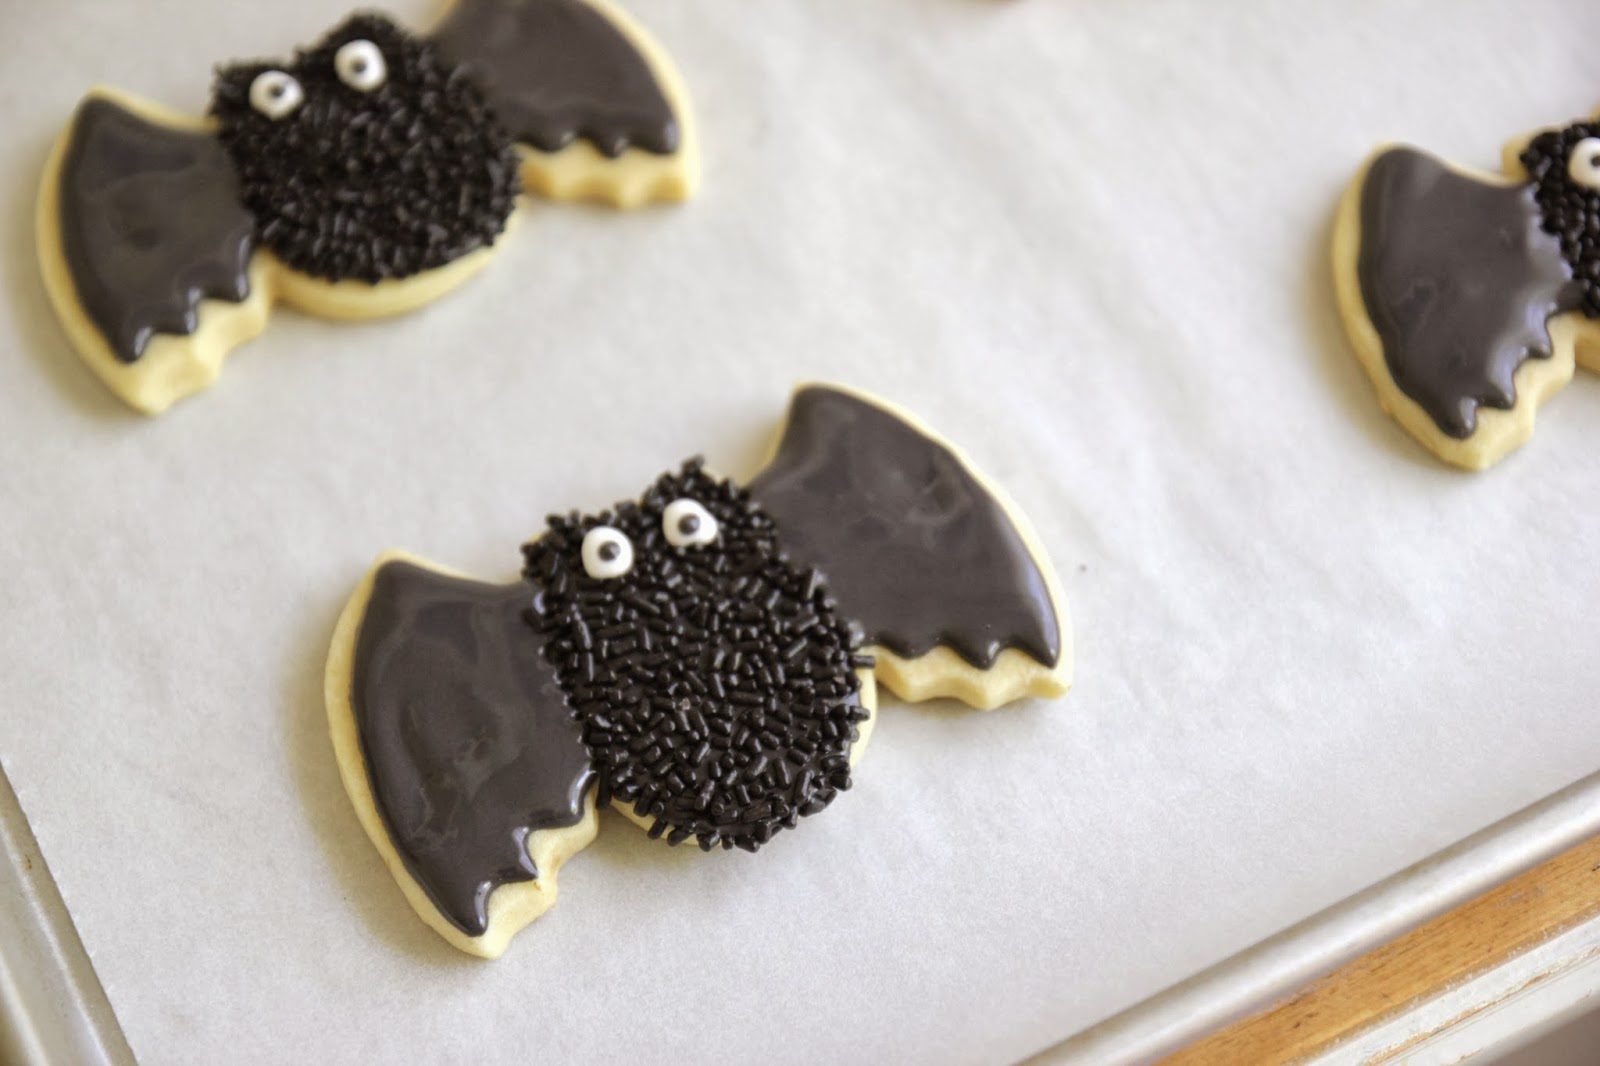 Spooky Bat Cookies